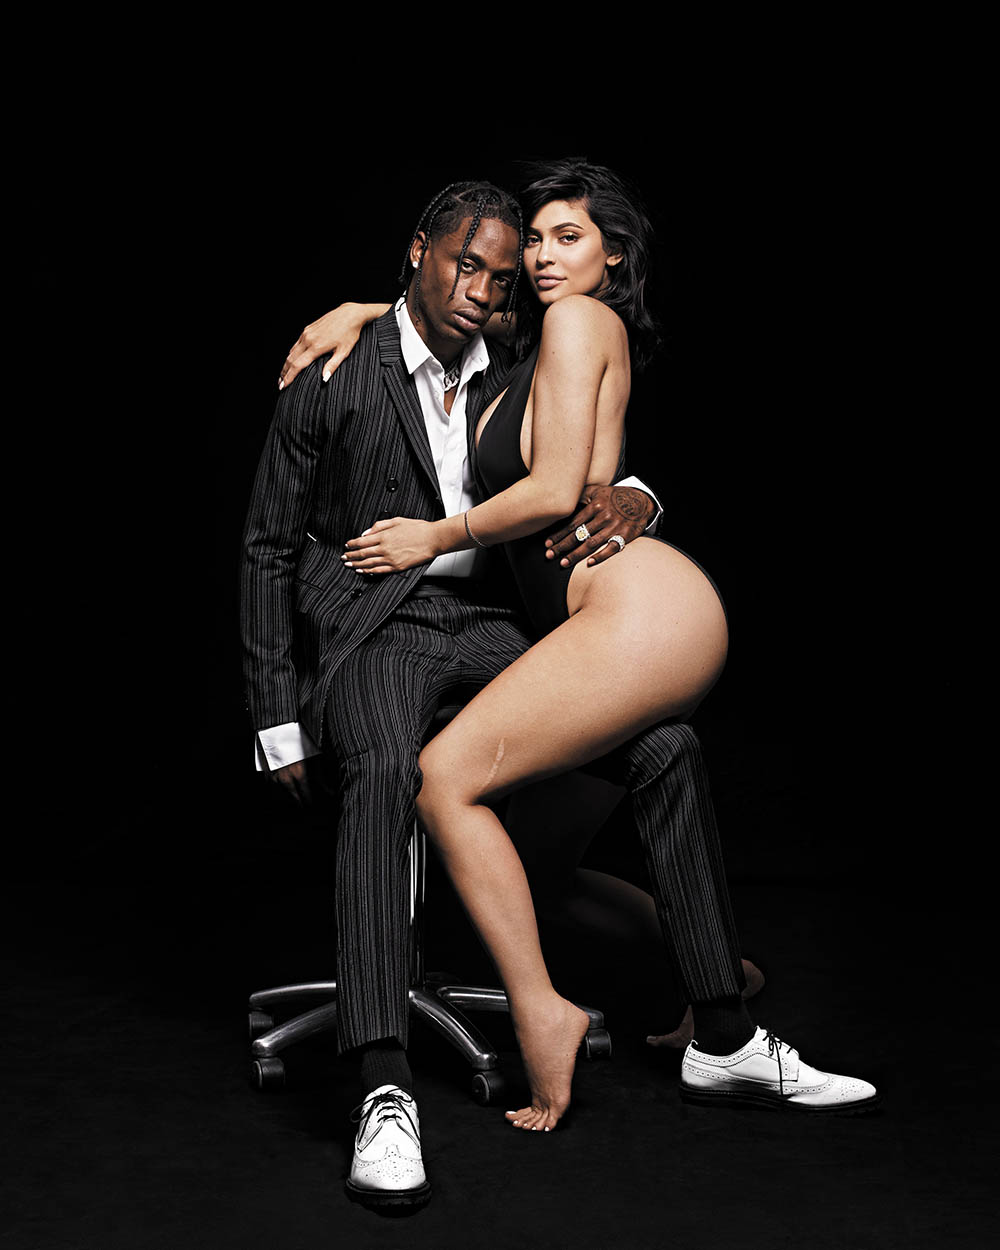 Kylie Jenner and Travis Scott cover GQ USA August 2018 by Paola Kudacki